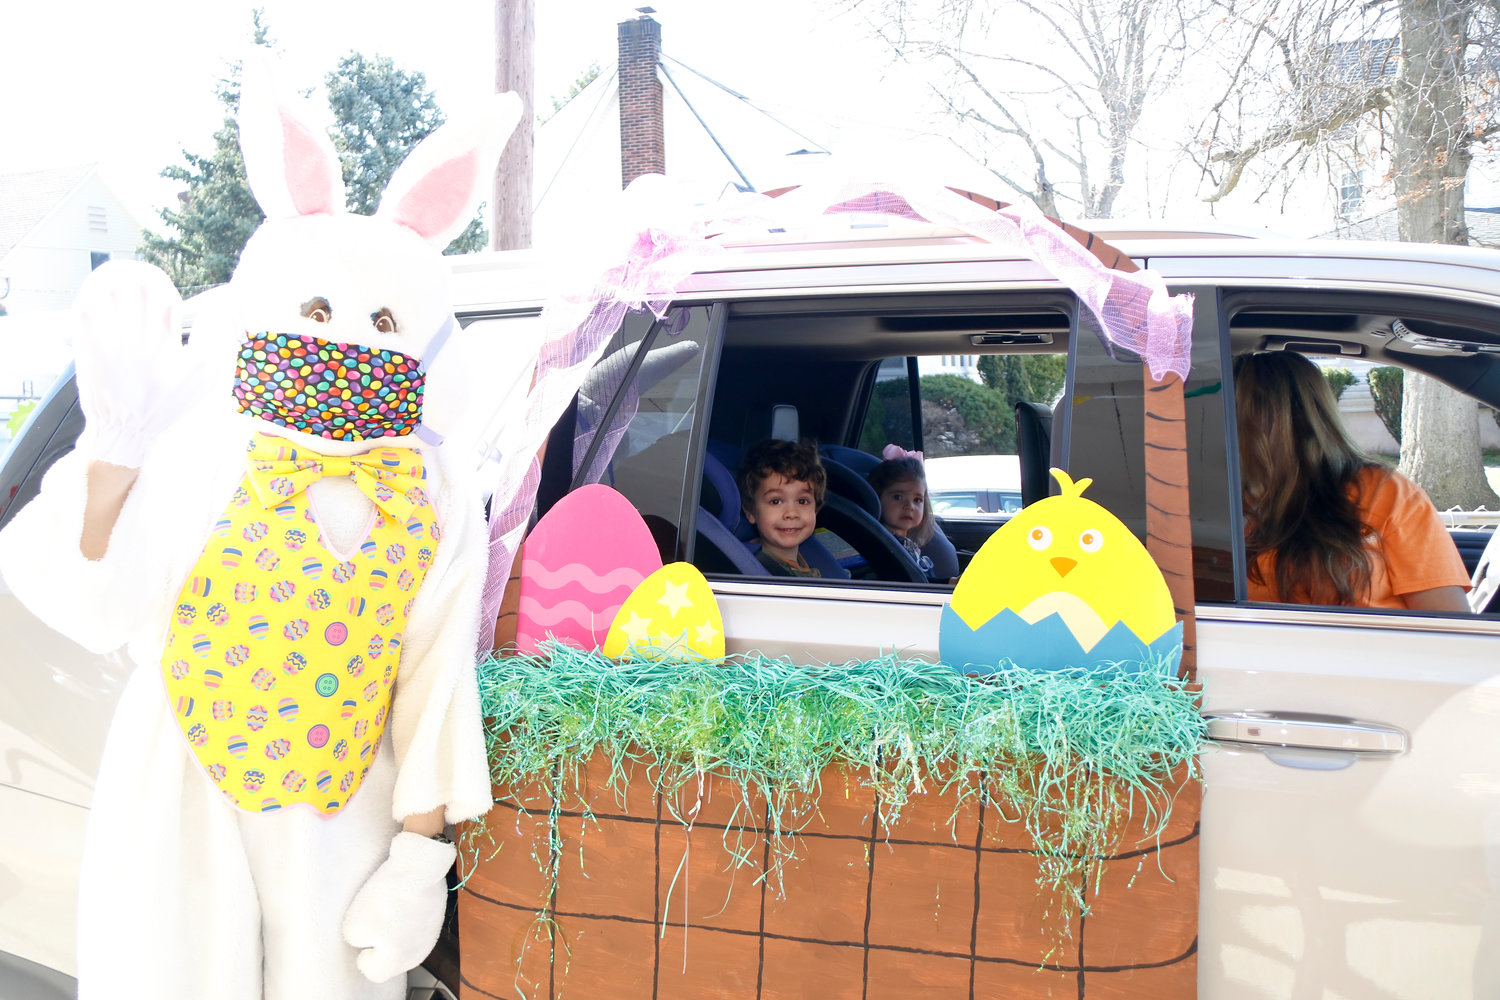 Oceanside Kiwanis and DOCA partnered on the Bunny Brigade event, a drive-by parade in celebration of Easter. The Costigans, Kane, 4, and Reese, 2, met the Easter Bunny, who was masked up for safety, outside School No. 6.